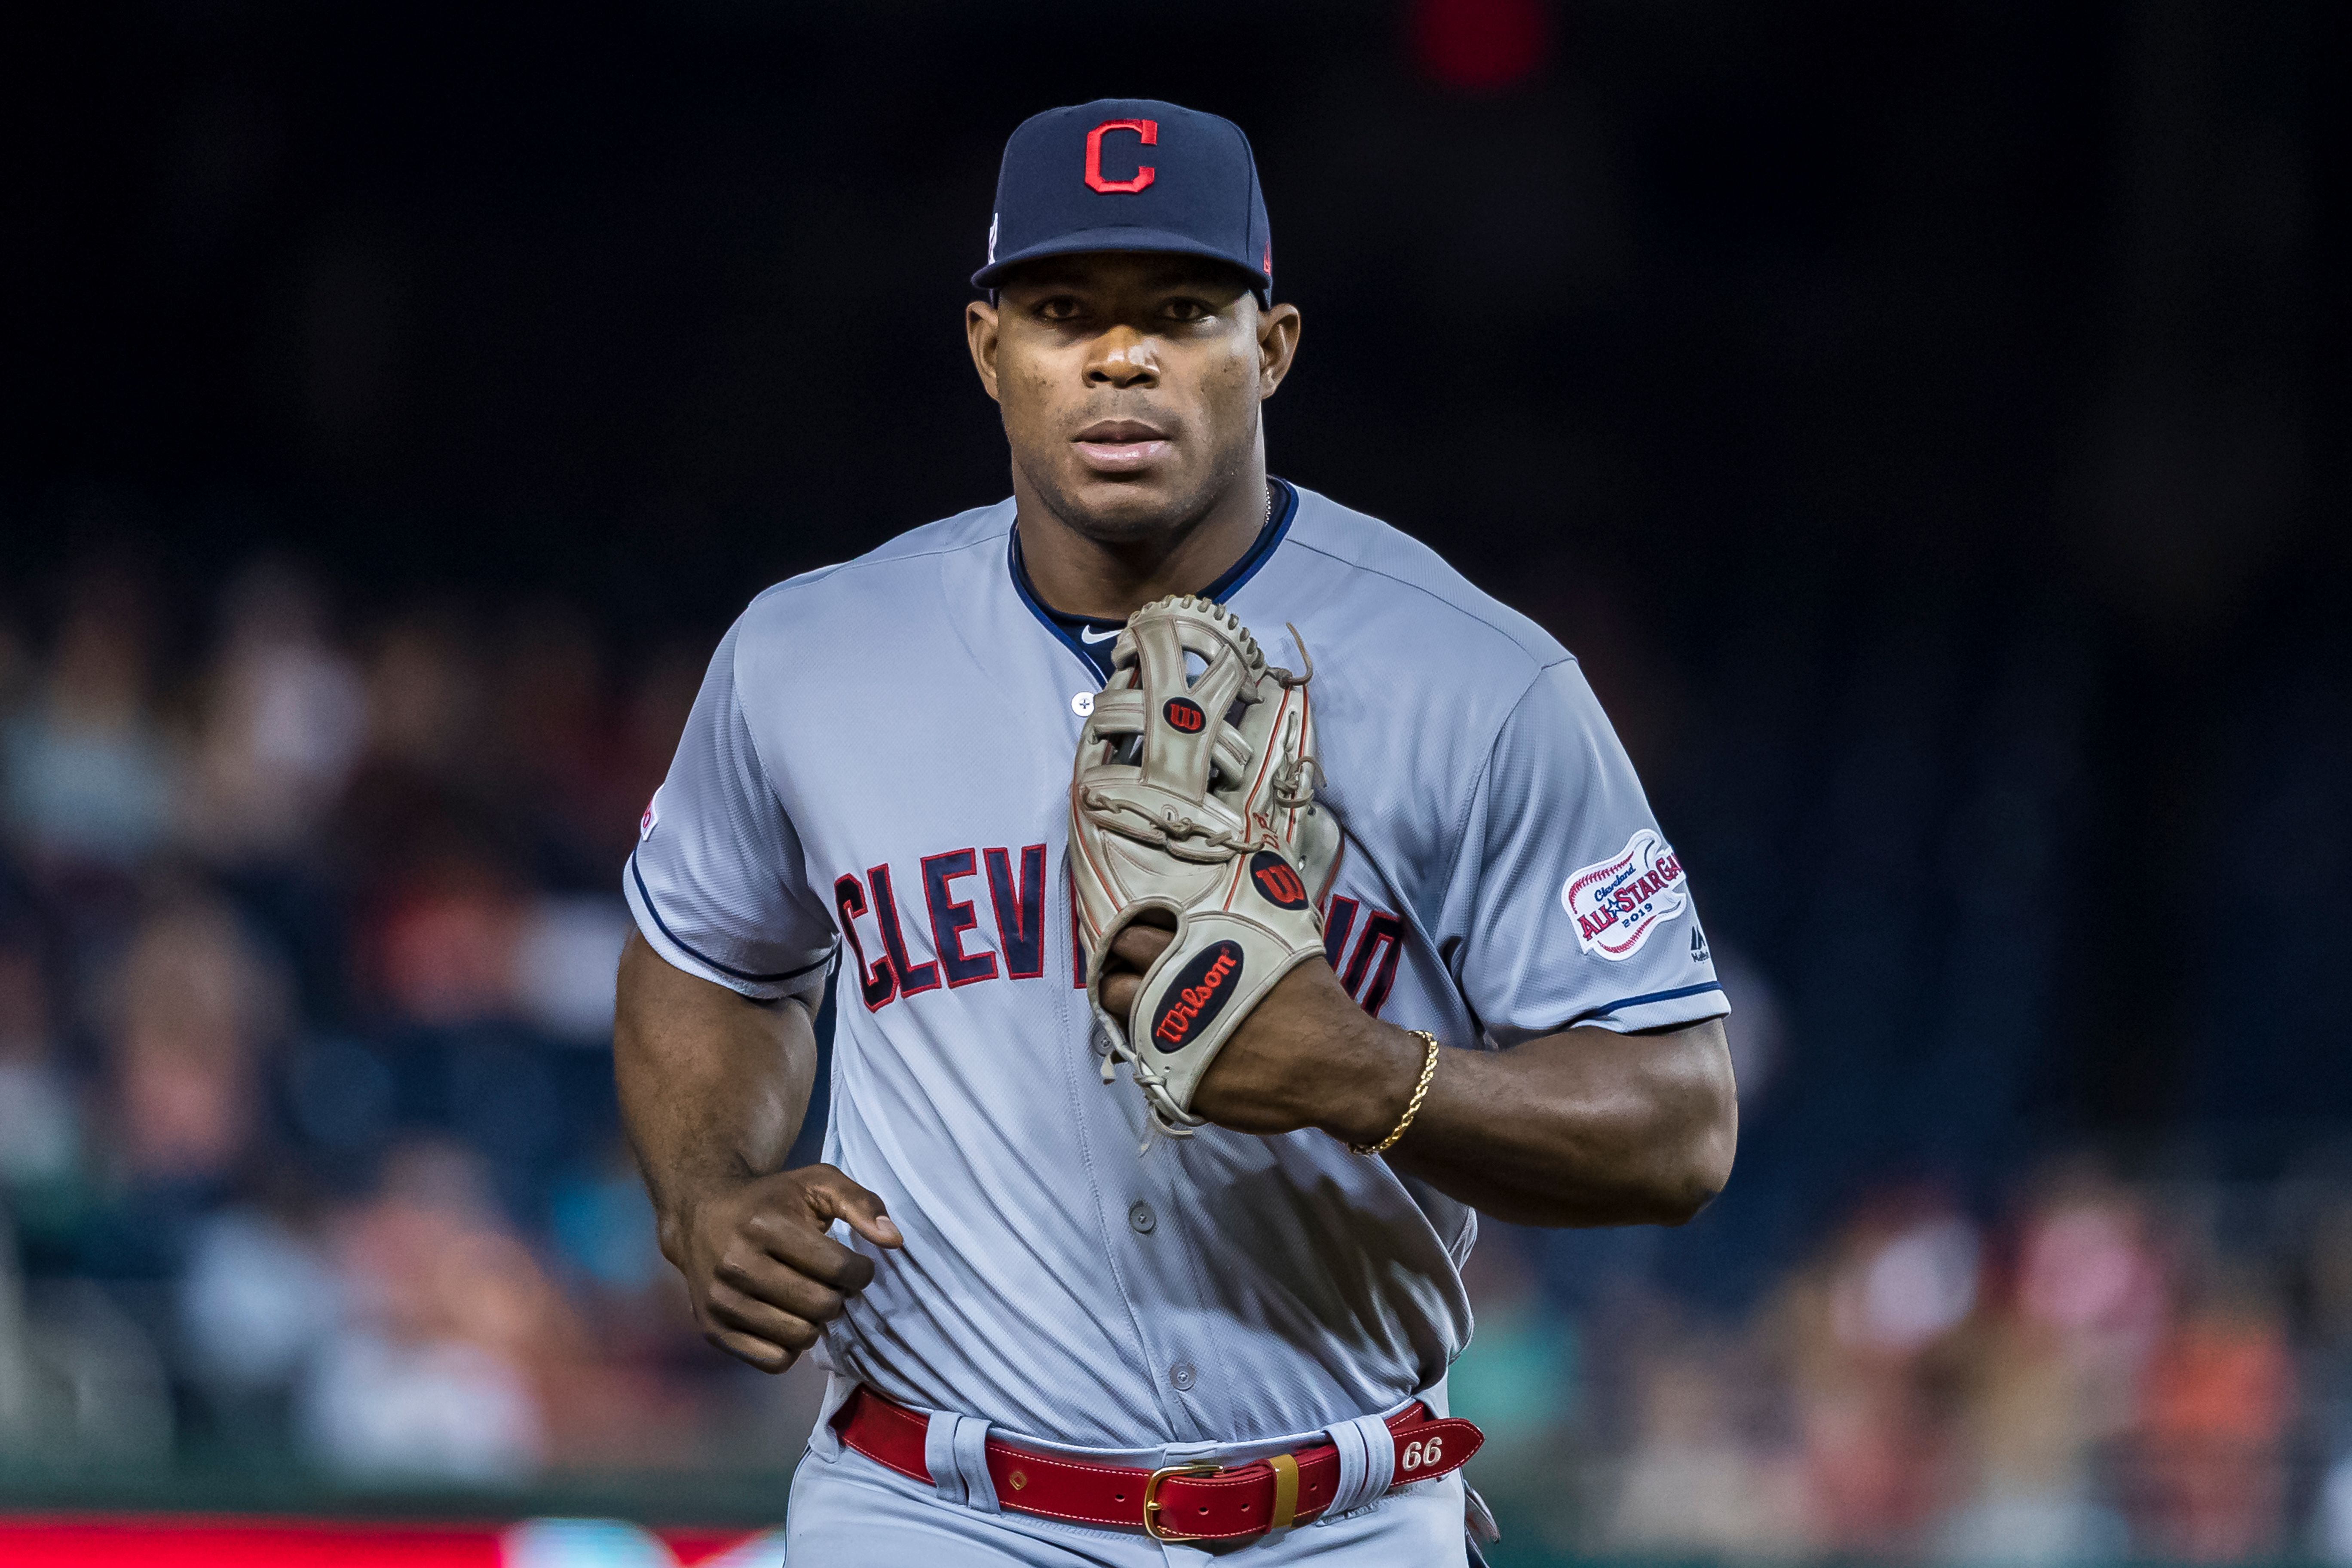 Yasiel Puig #66 of the Cleveland Indians returns to the dugout after fielding during the eighth inning against the Washington Nationals at Nationals Park on September 27, 2019 in Washington, DC   Photo: Getty Images